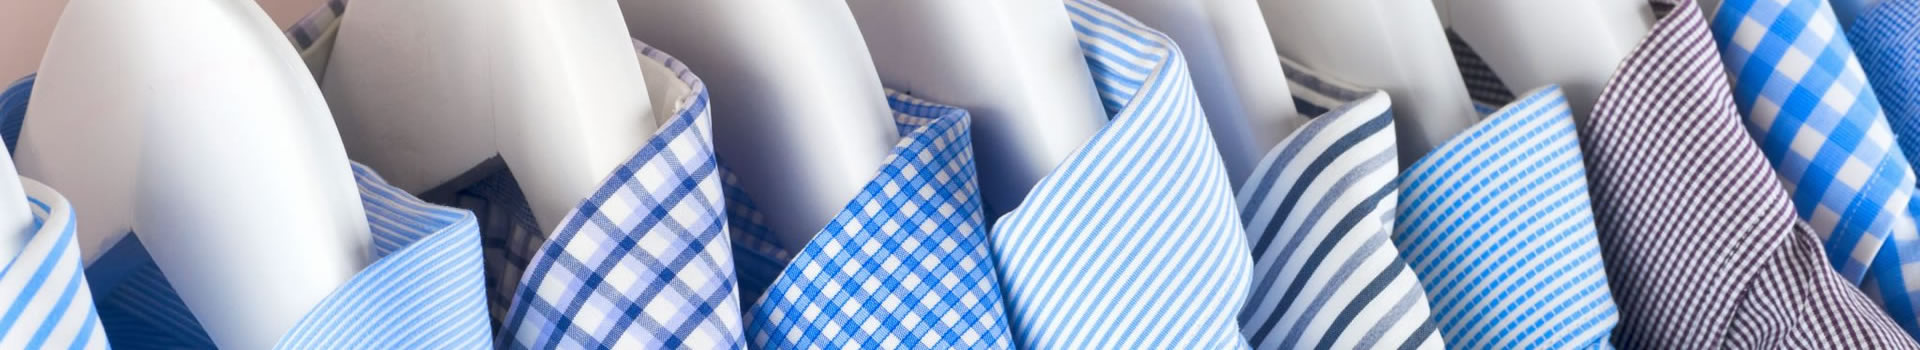 Shirt laundry and ironing service in High Wycombe